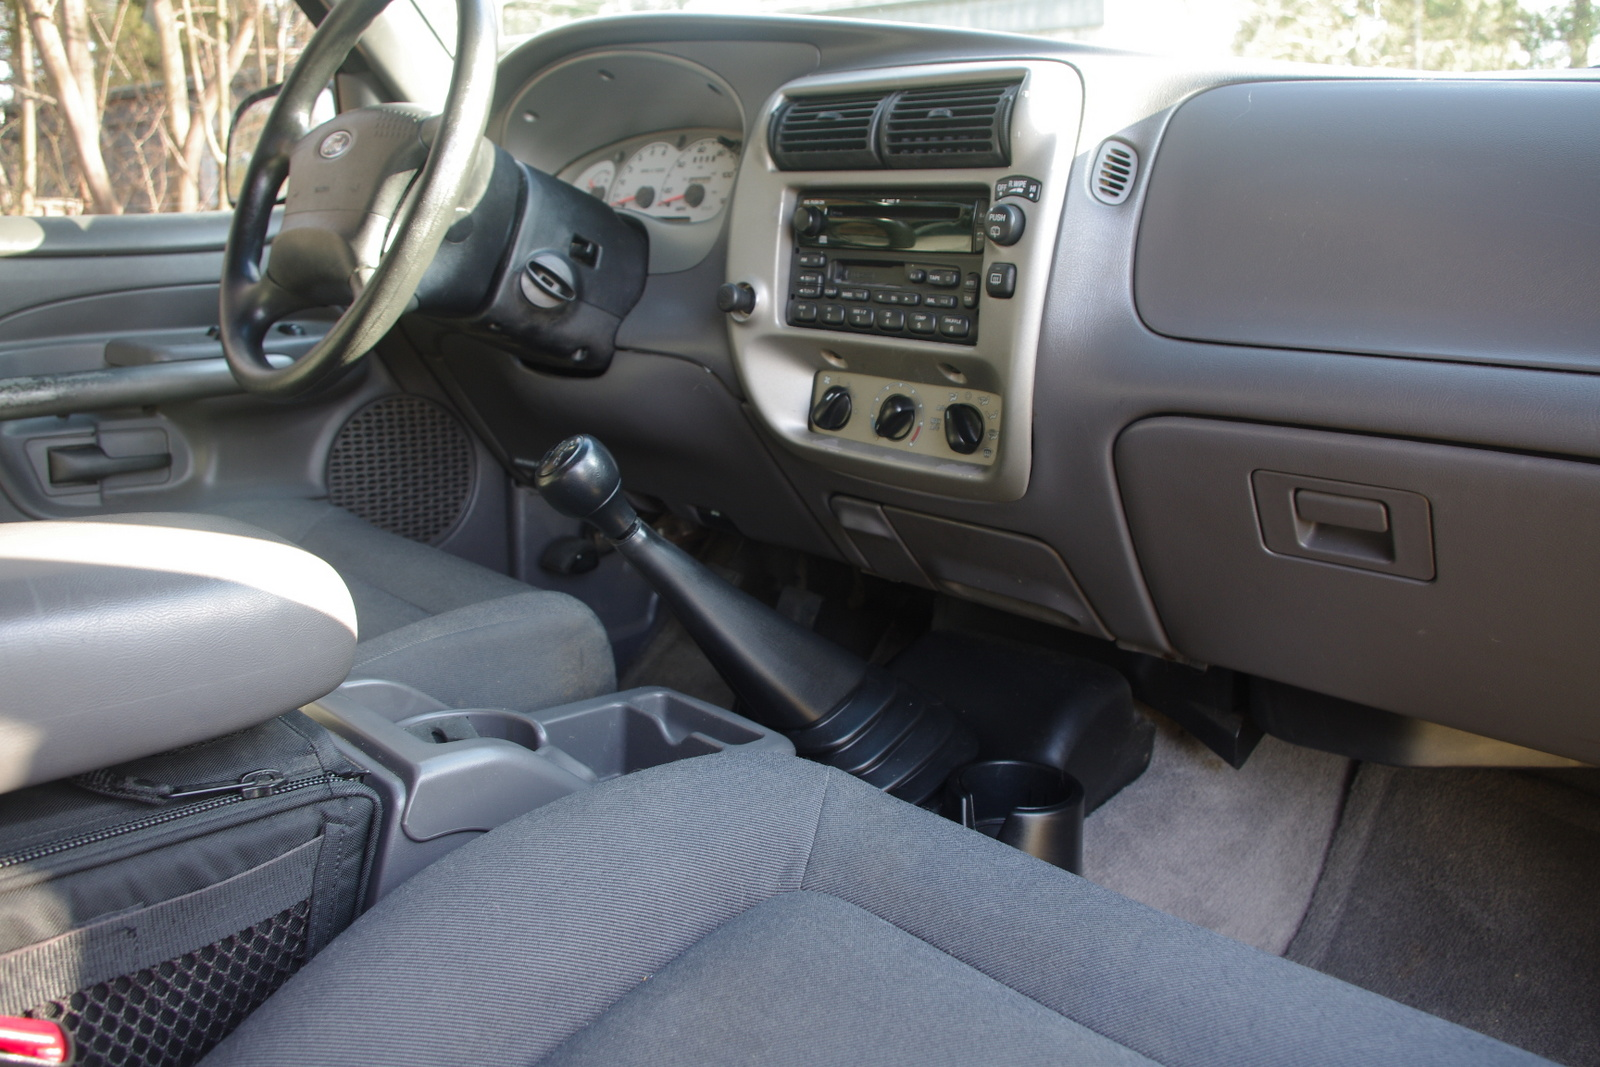 2002 ford explorer sport interior pictures cargurus. Black Bedroom Furniture Sets. Home Design Ideas